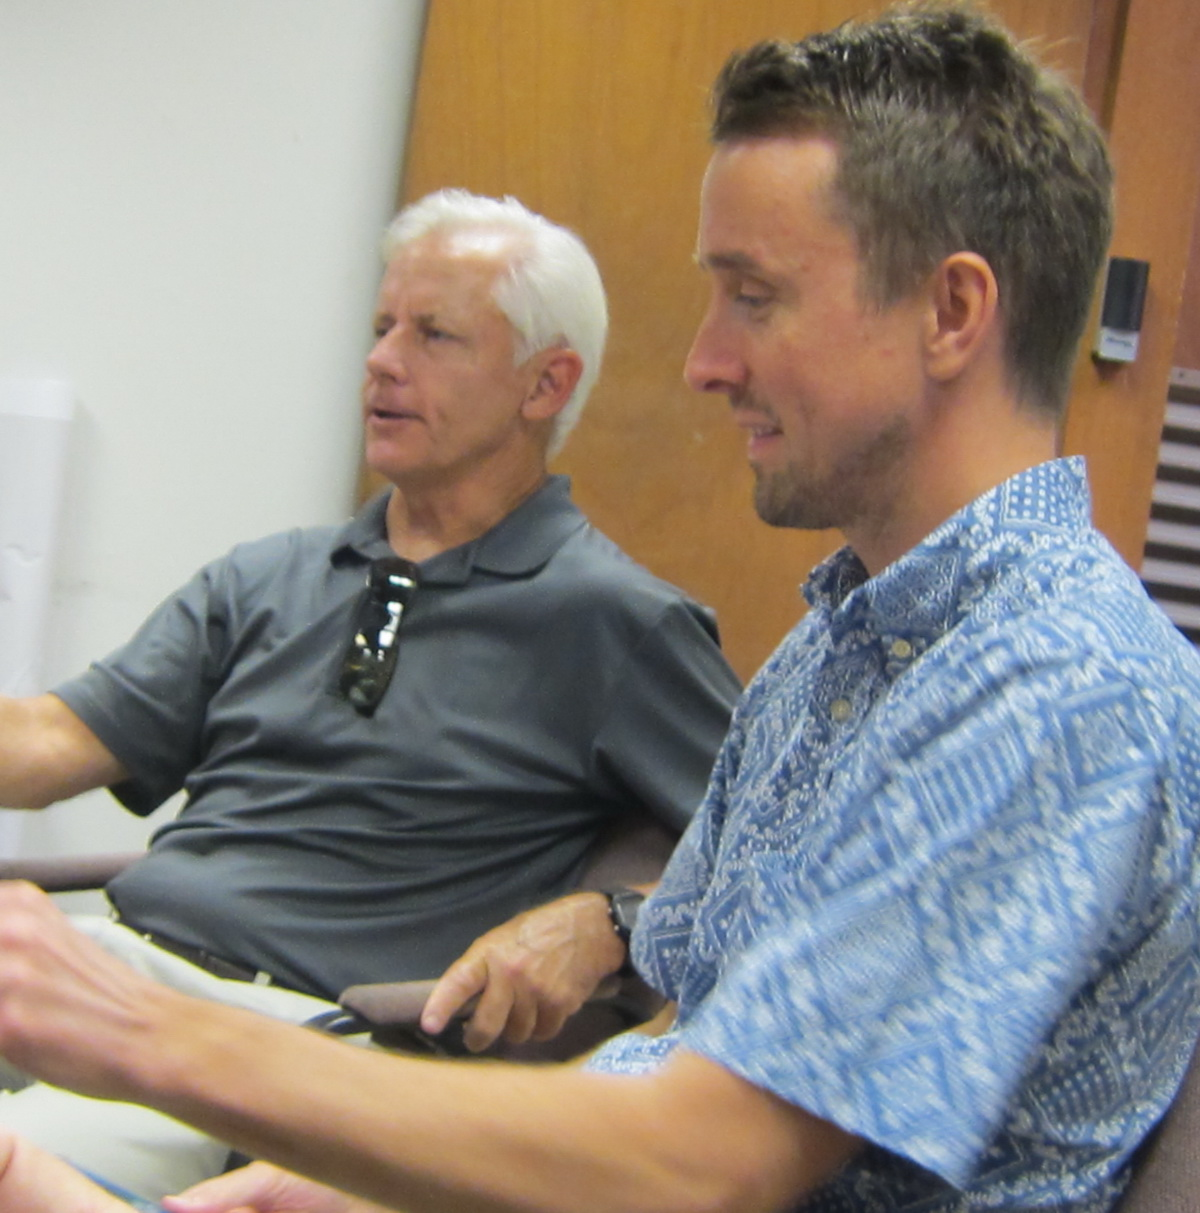 kca design review committee previews plan for wailea residential project